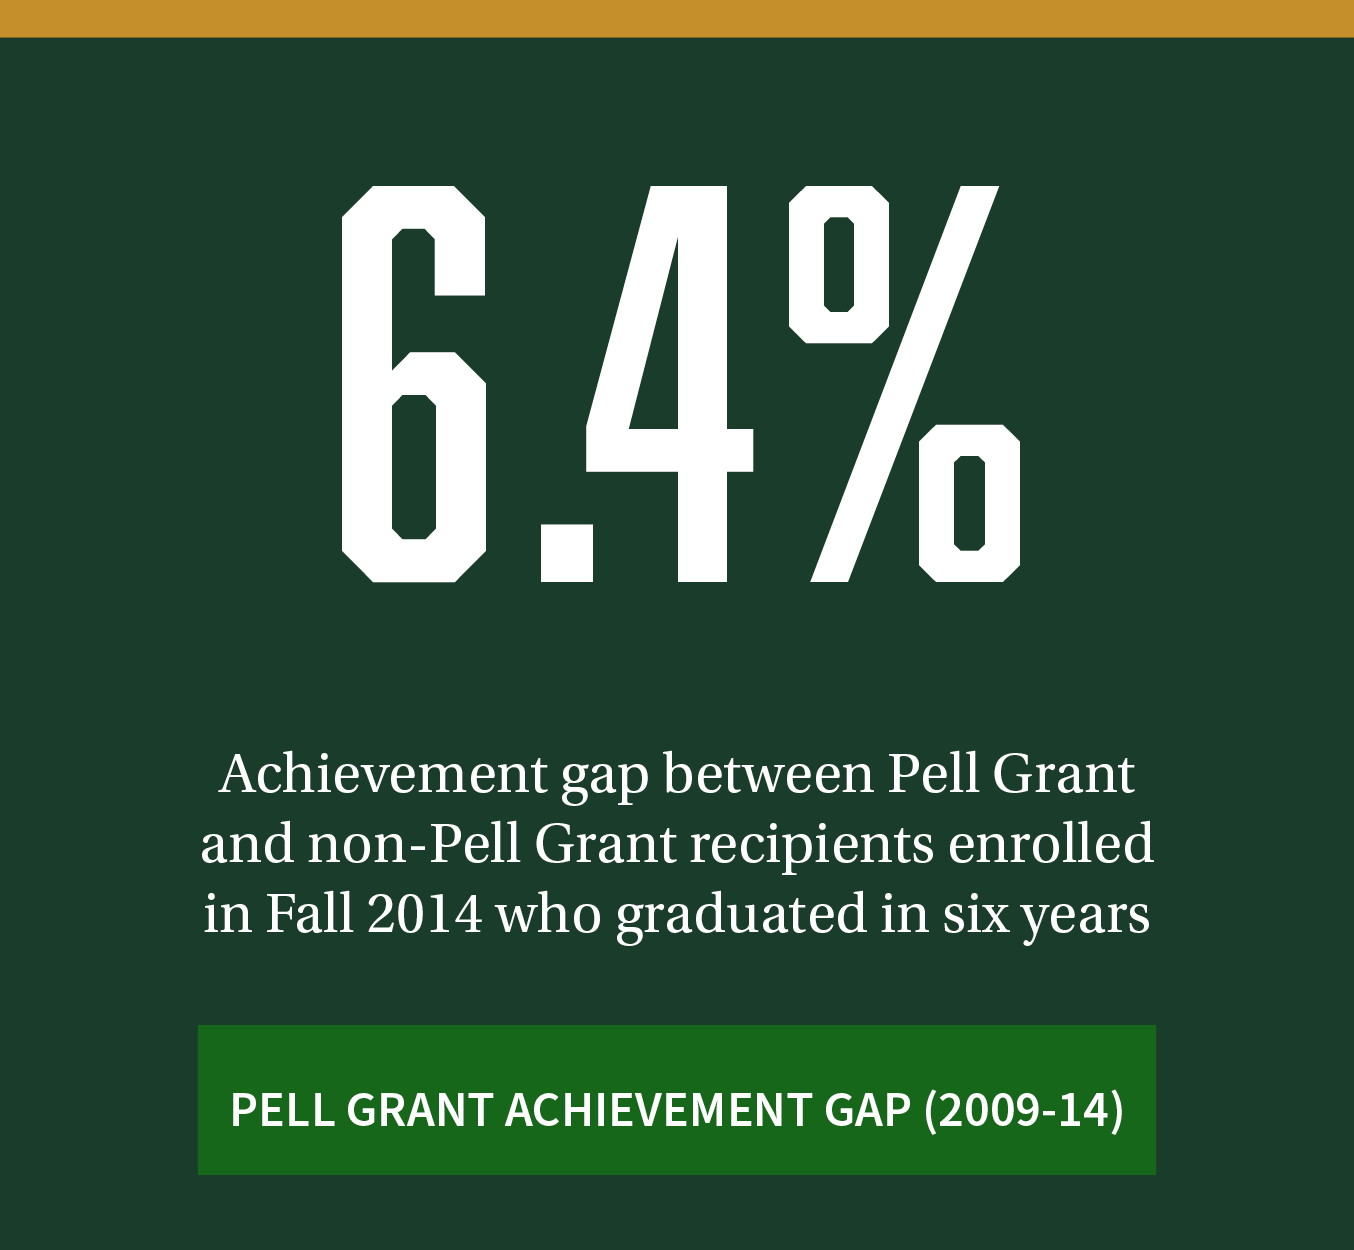 6.4%. Achievement gap between Pell Grant and non-Pell Grant recipients enrolled in Fall 2014 who graduated in six years. Click to review additional Pell Grant achievement gap data between 2009-14.